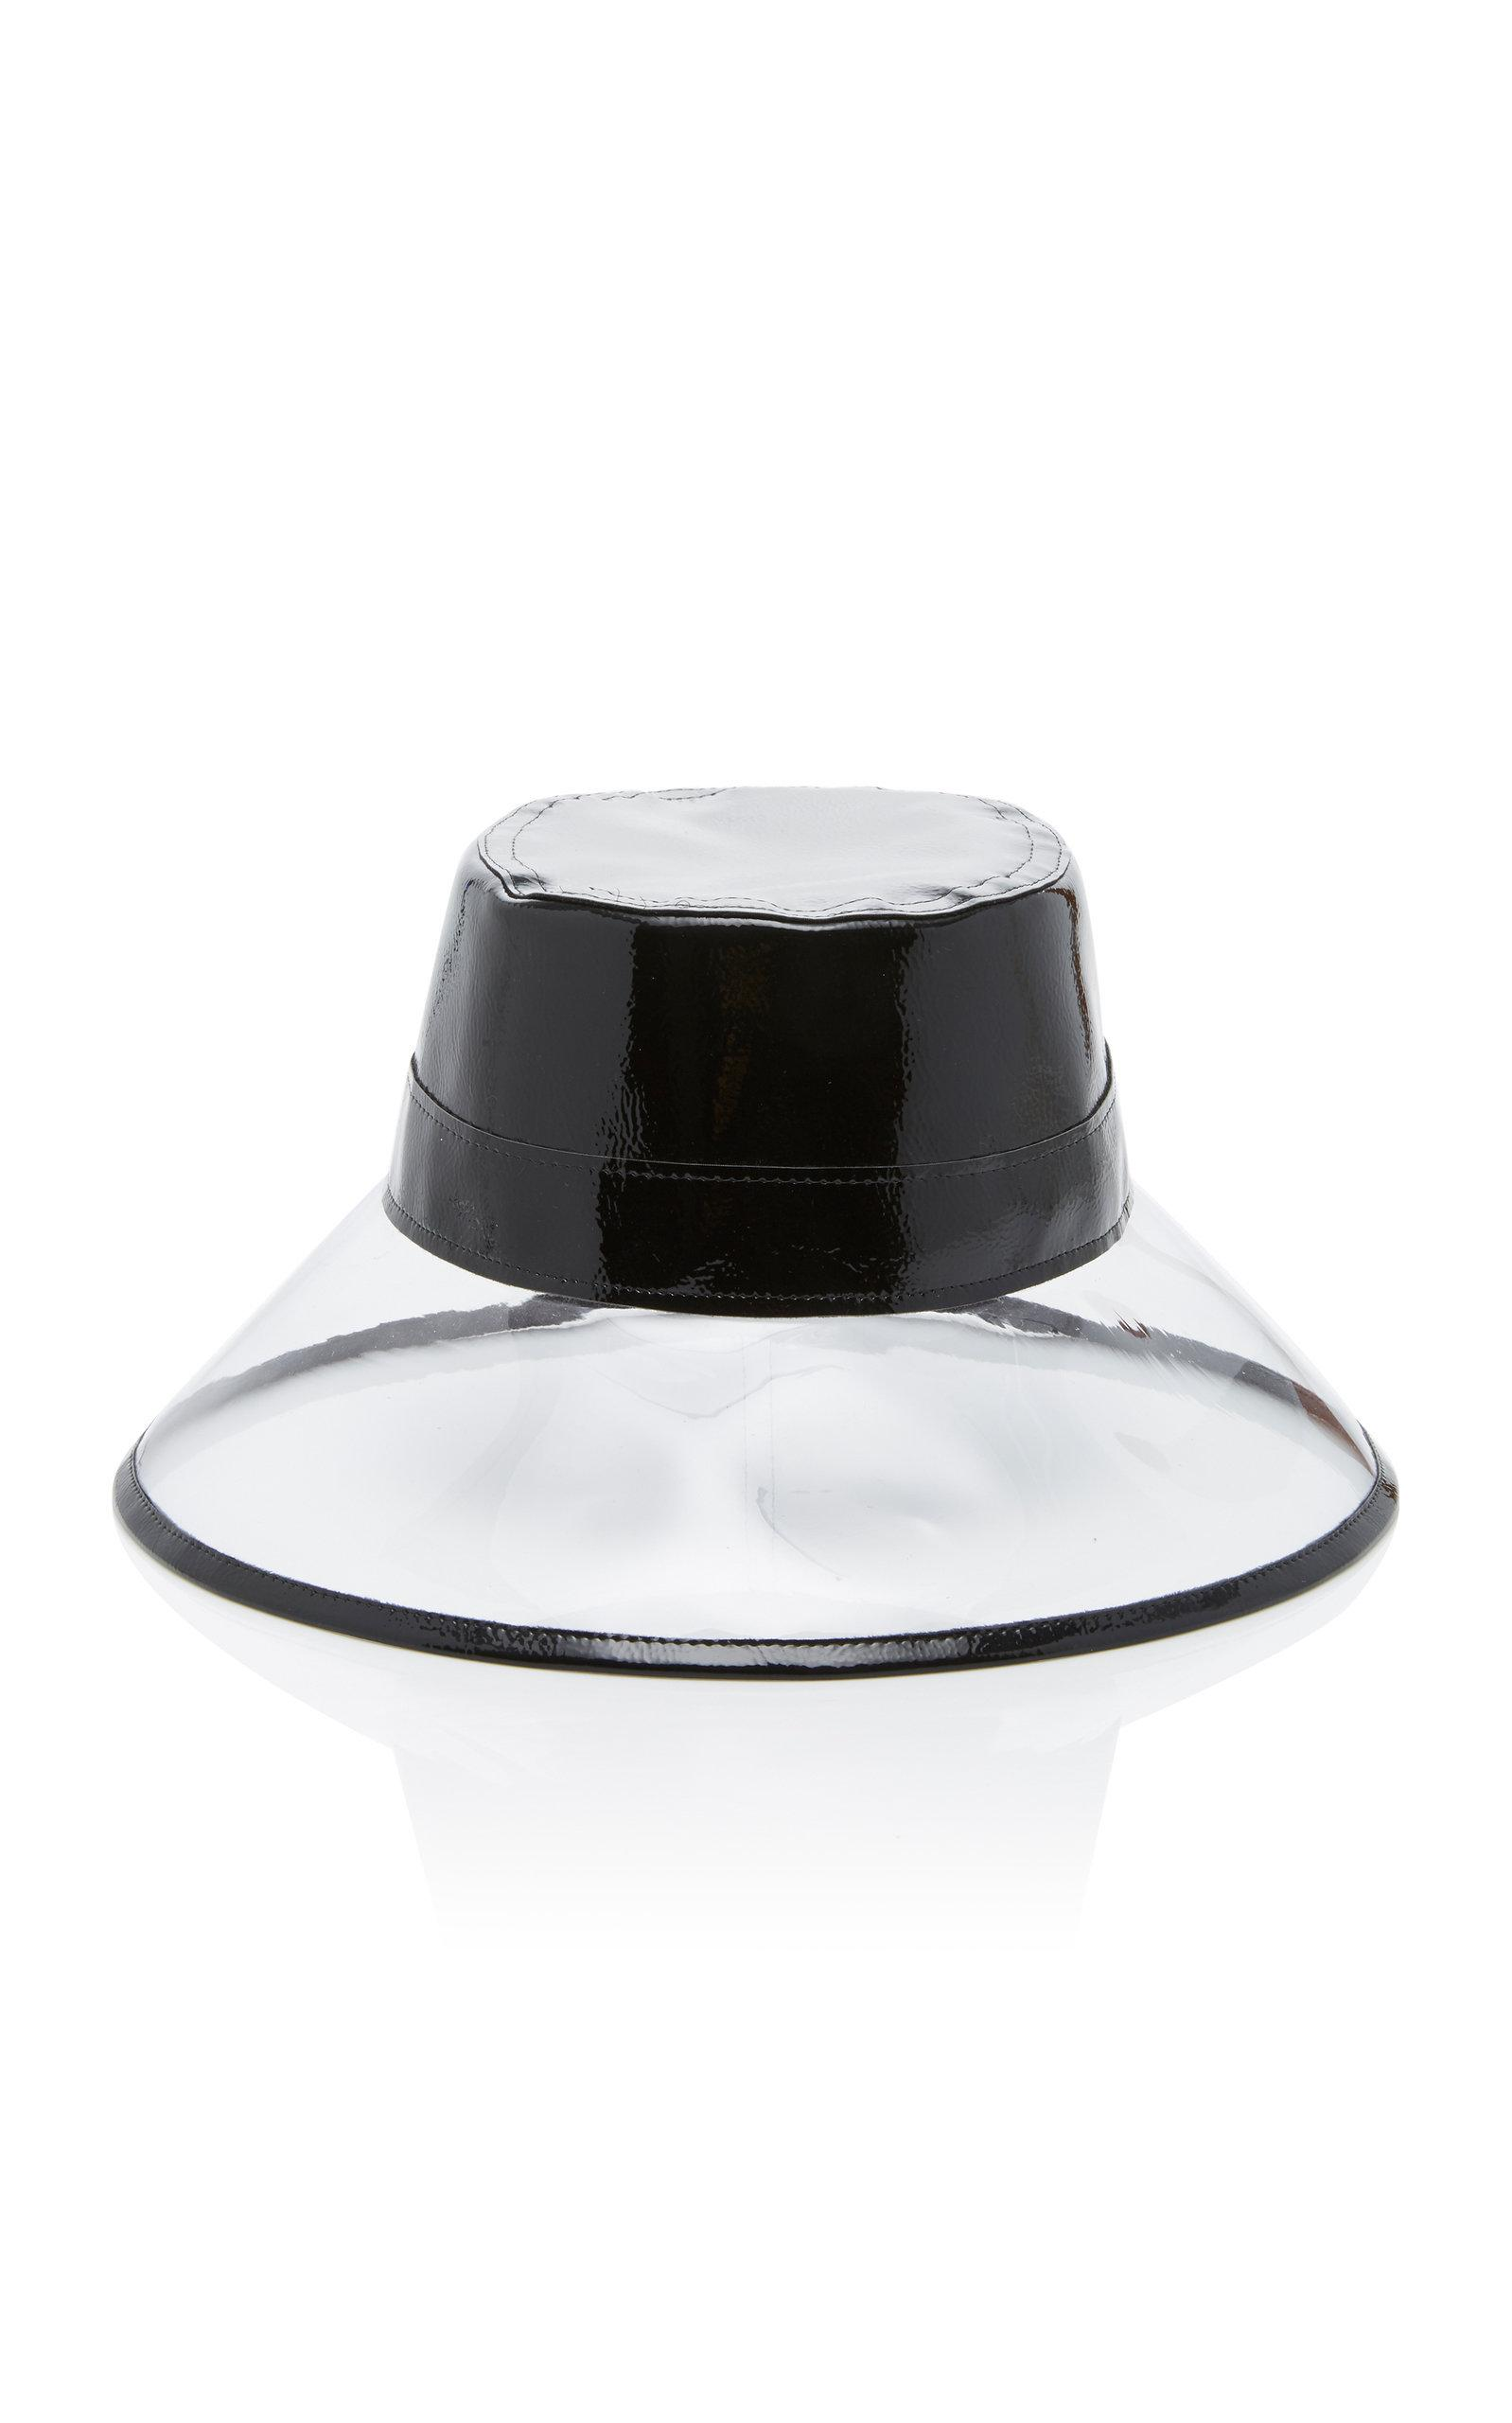 f67399896e76c Eric Javits Go-Go Patent Leather And Pvc Bucket Hat In Black